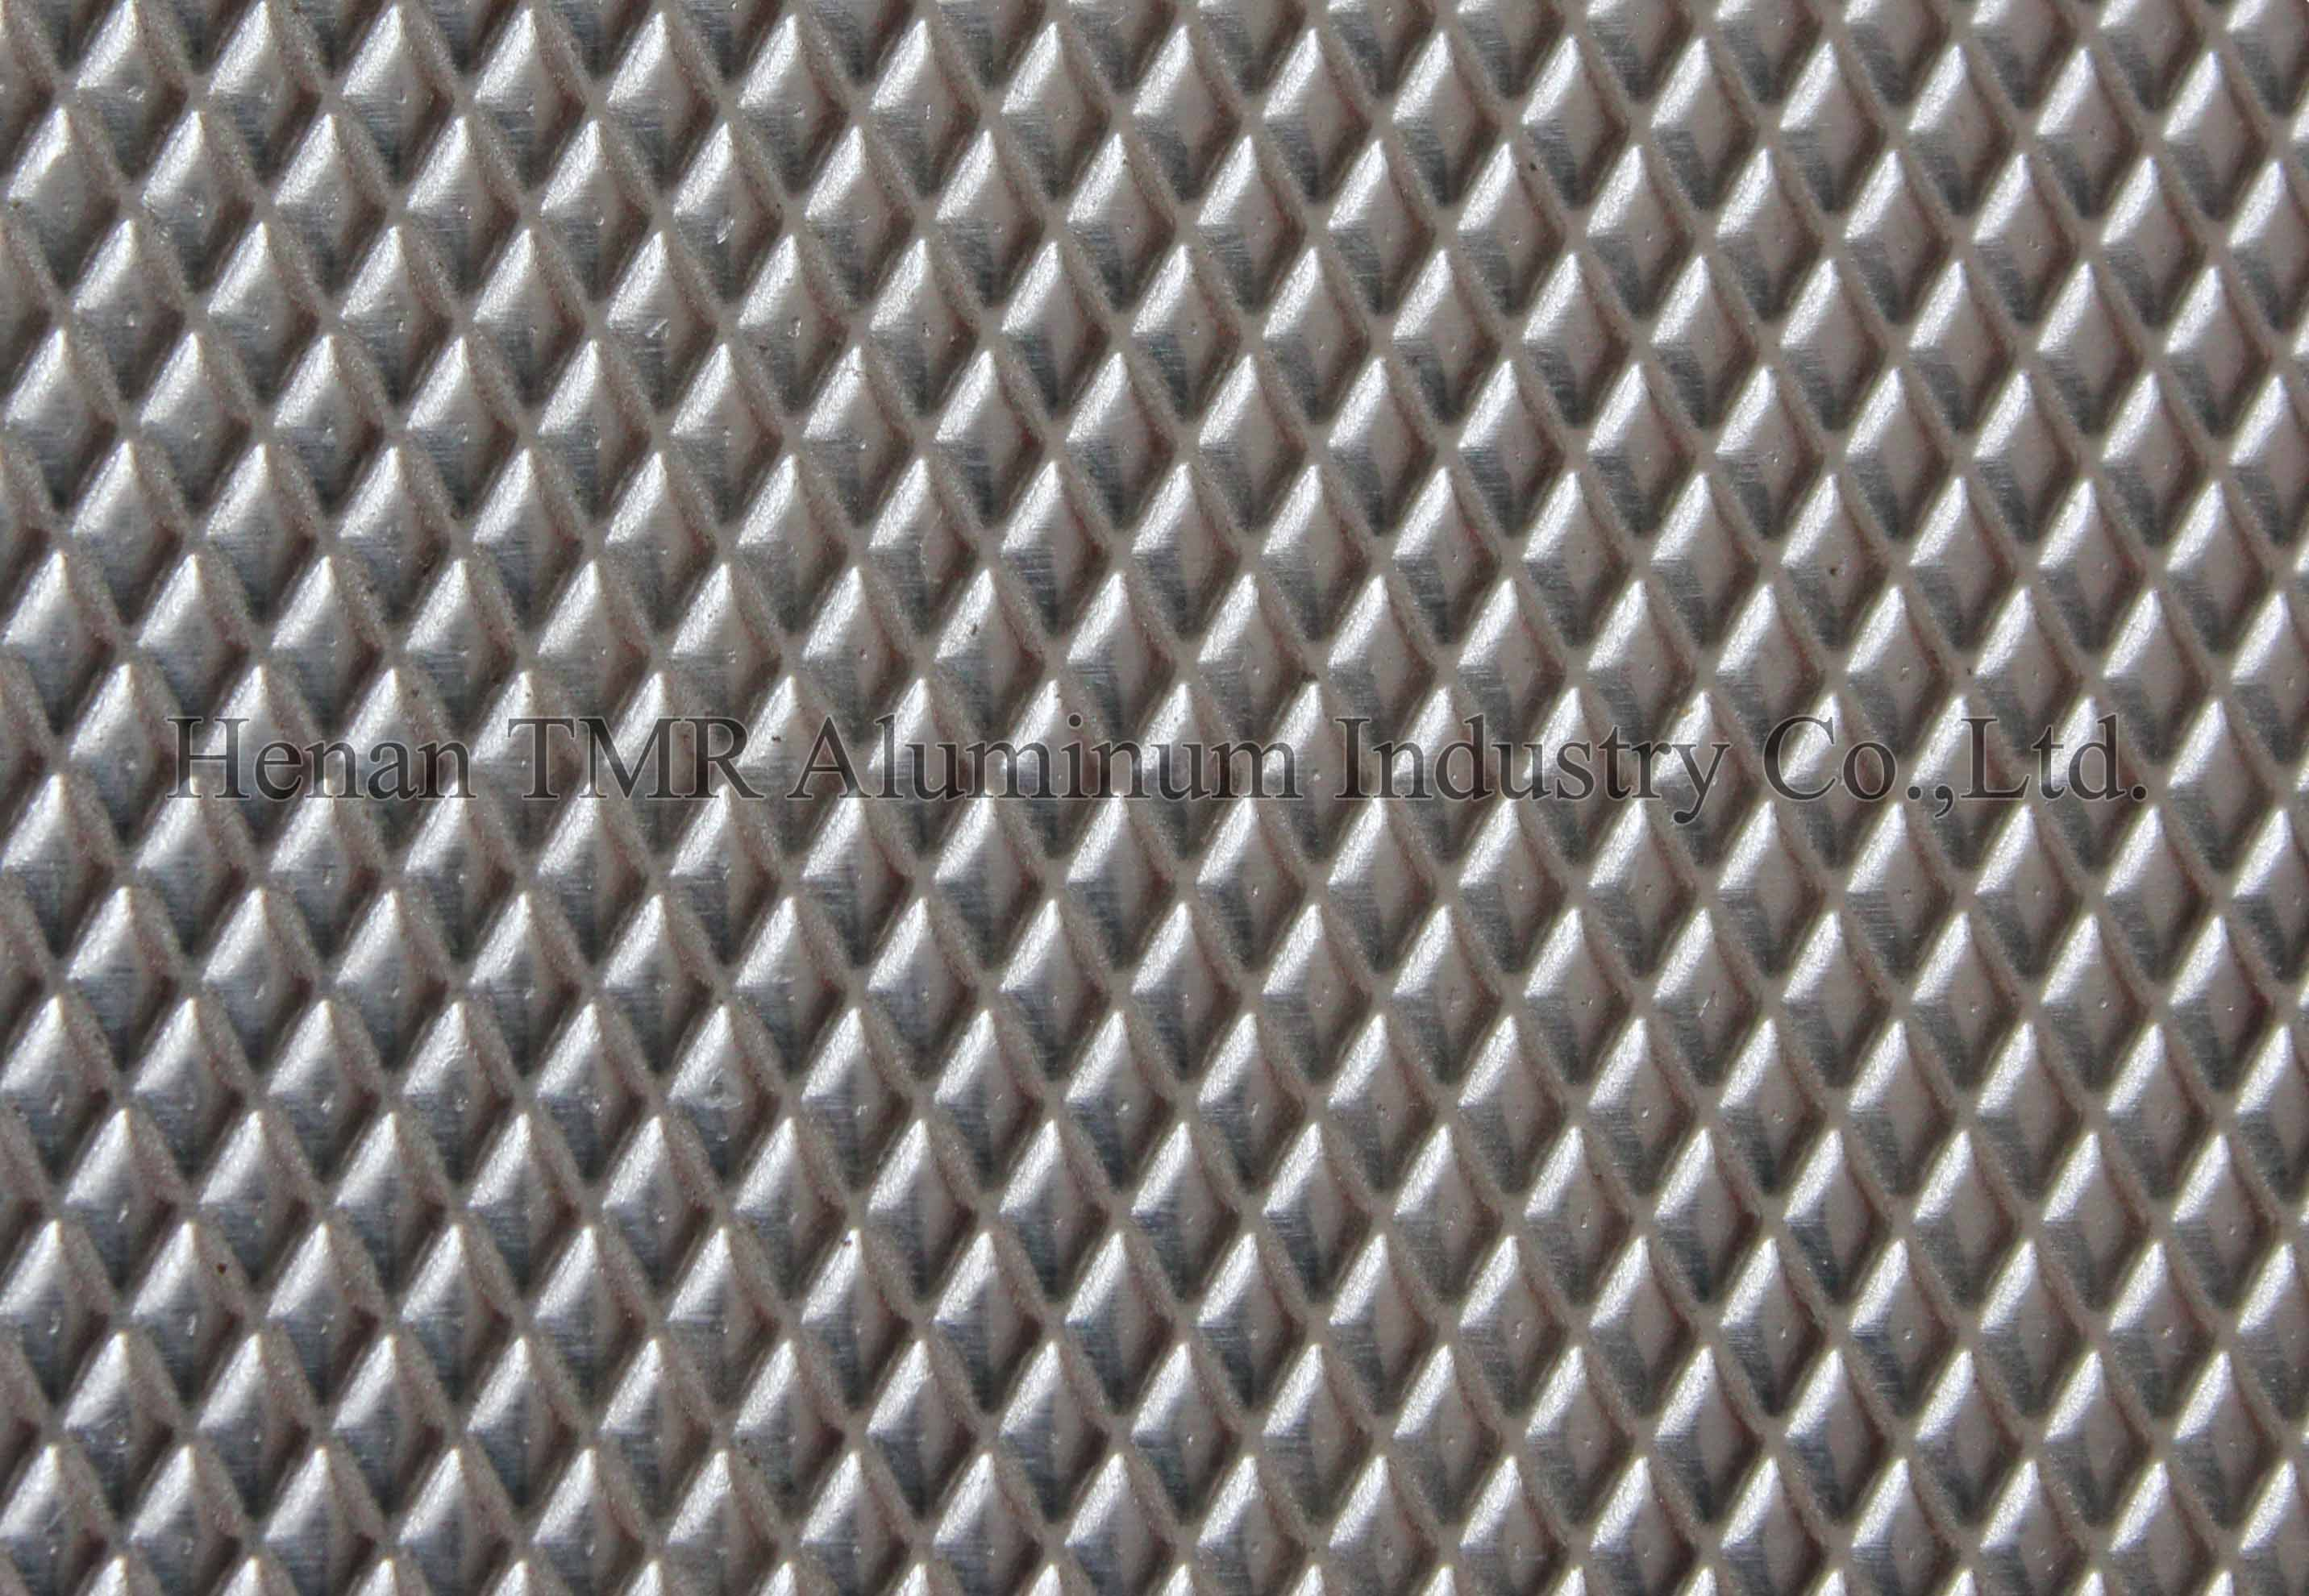 Embossed Aluminum Coils Sheets Stucco Embossed Aluminum Coils Color Coated Embossed Aluminum Sheets